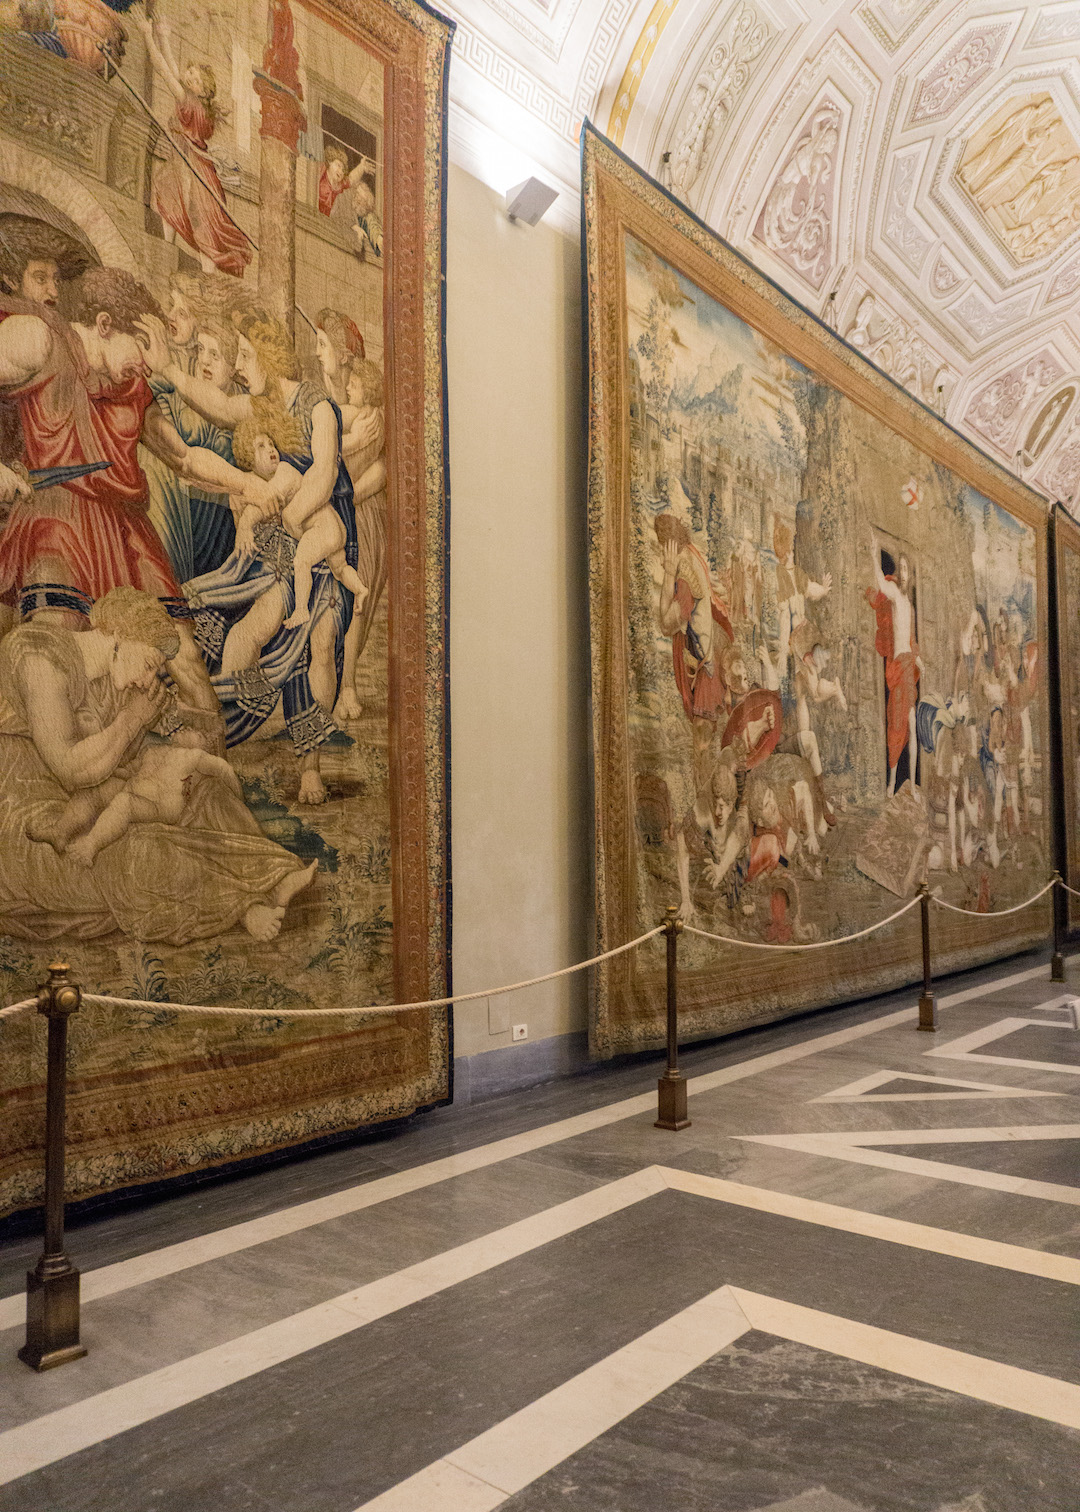 Tapestry of Jesus at the Vatican